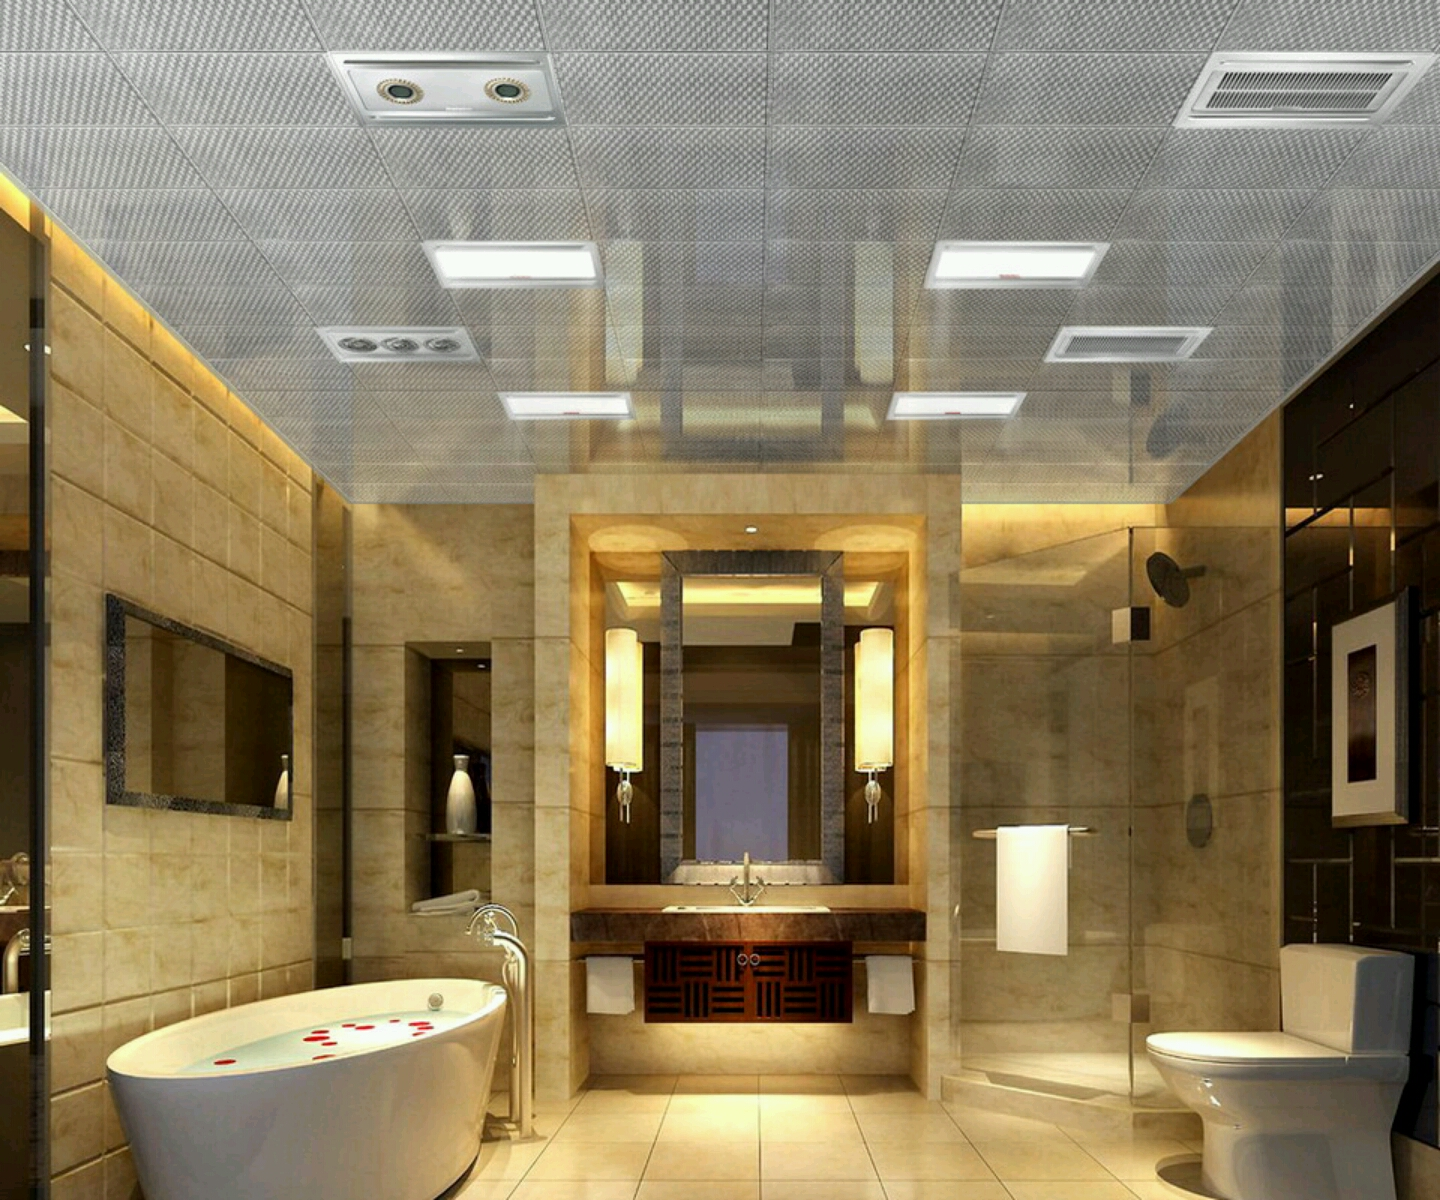 Luxury bathrooms designs ideas modern home designs for Bathroom designs pictures